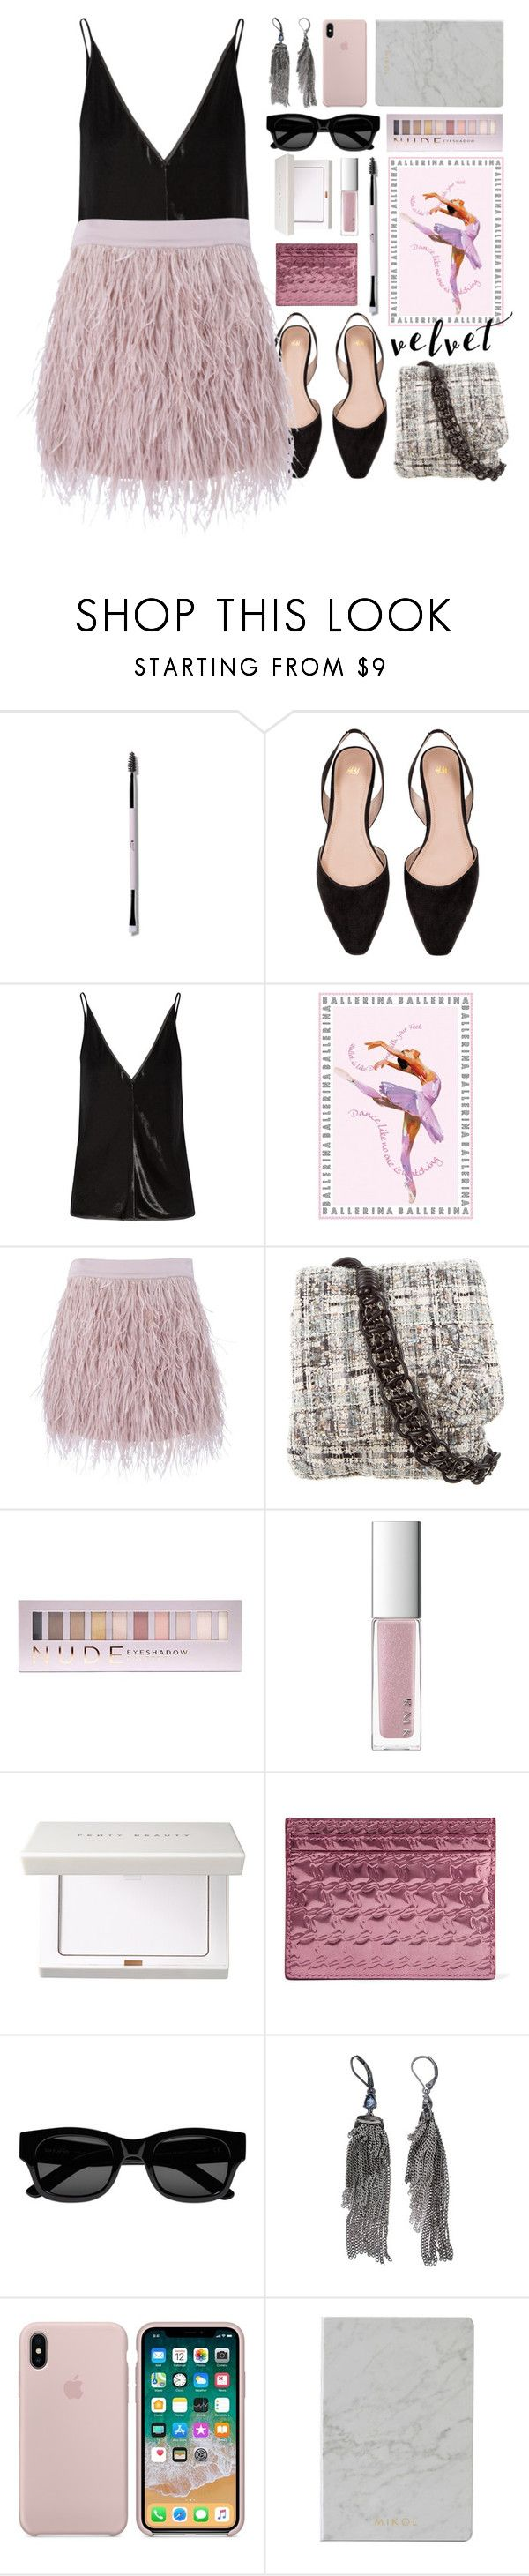 """love ballet"" by foundlostme ❤ liked on Polyvore featuring Gabriela Hearst, SuperTrash, Chanel, Forever 21, RMK, Christian Louboutin, Sun Buddies, Simply Vera, Mikol and velvet"